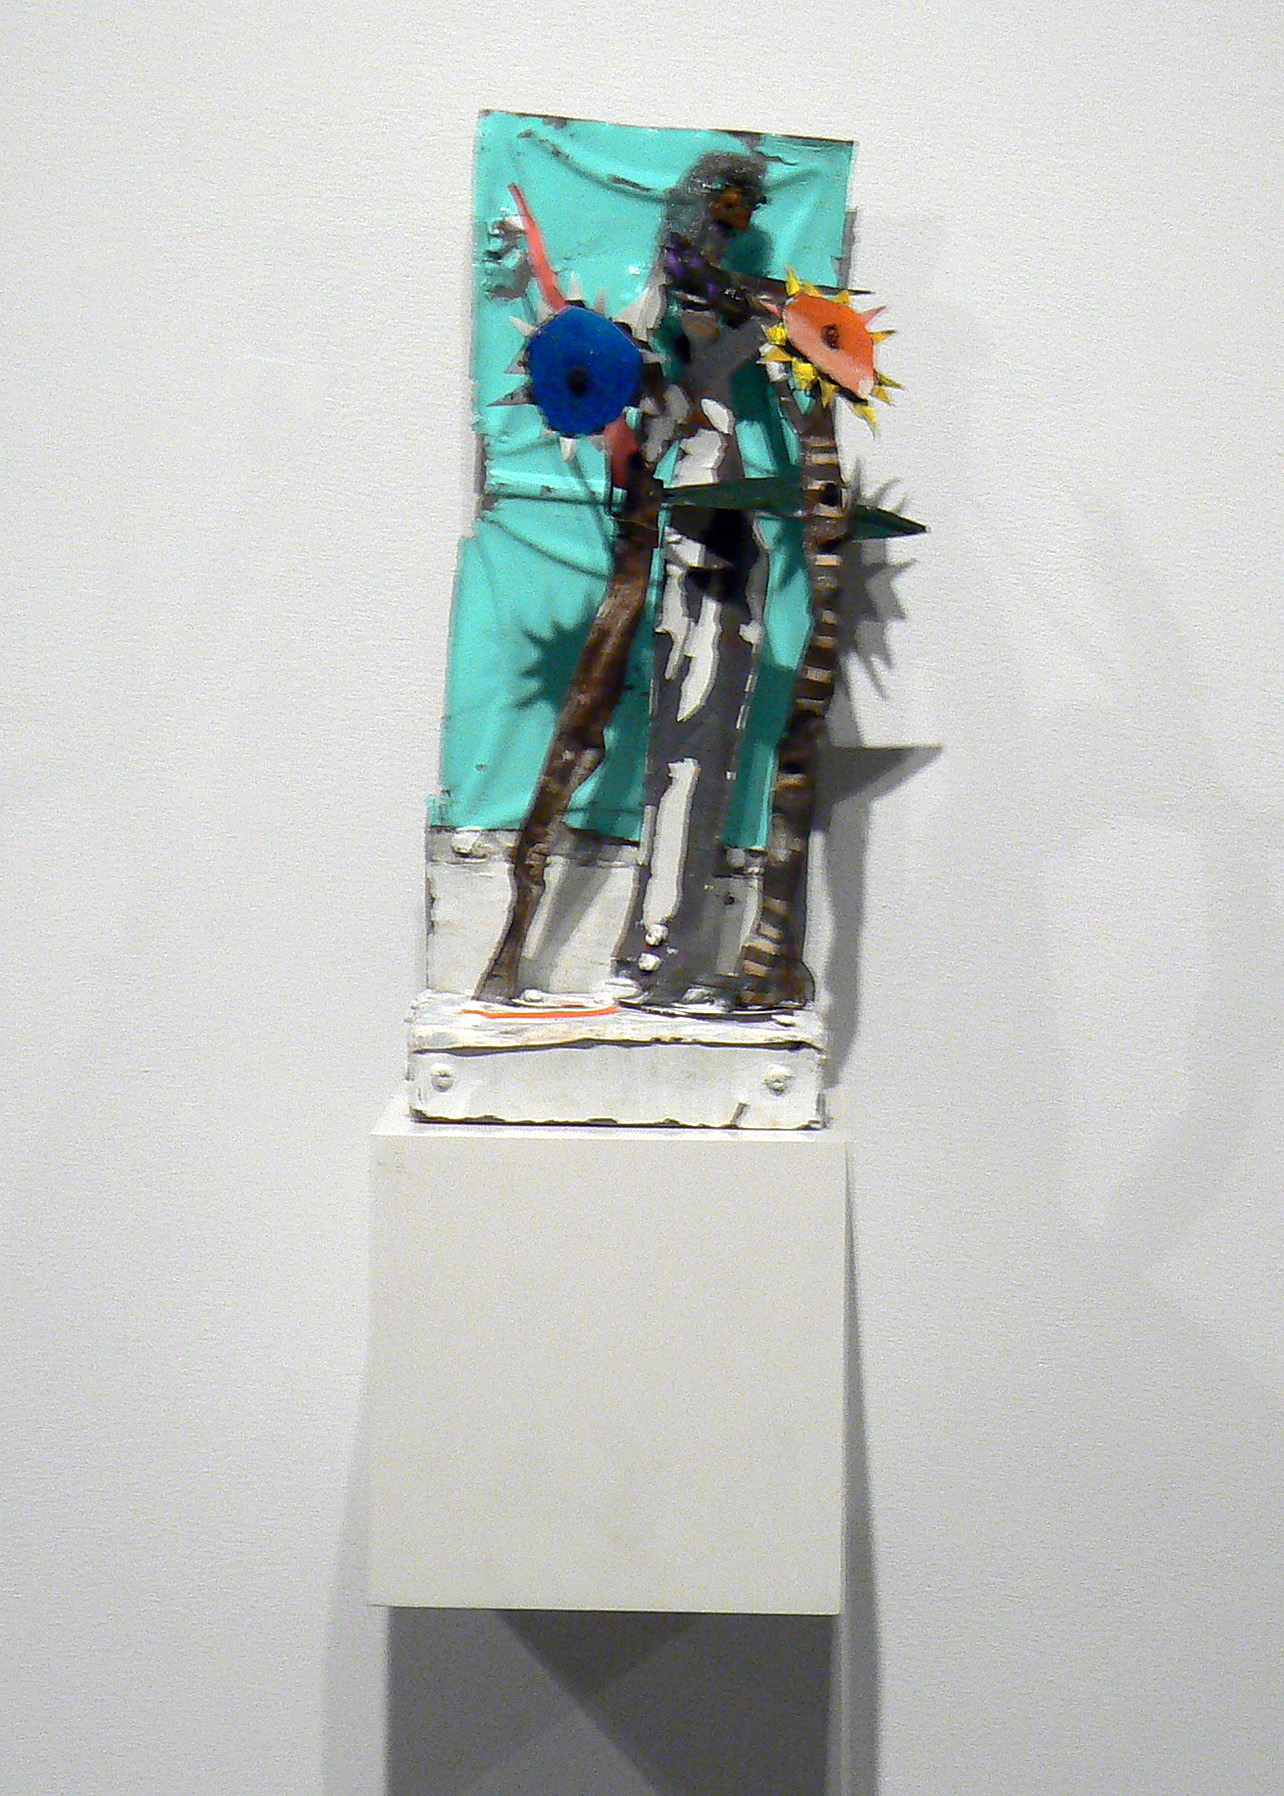 Matthew Blackwell, C'Mon Up on the House, 2008-2010, collage on canvas, 74.25h x 58w in.